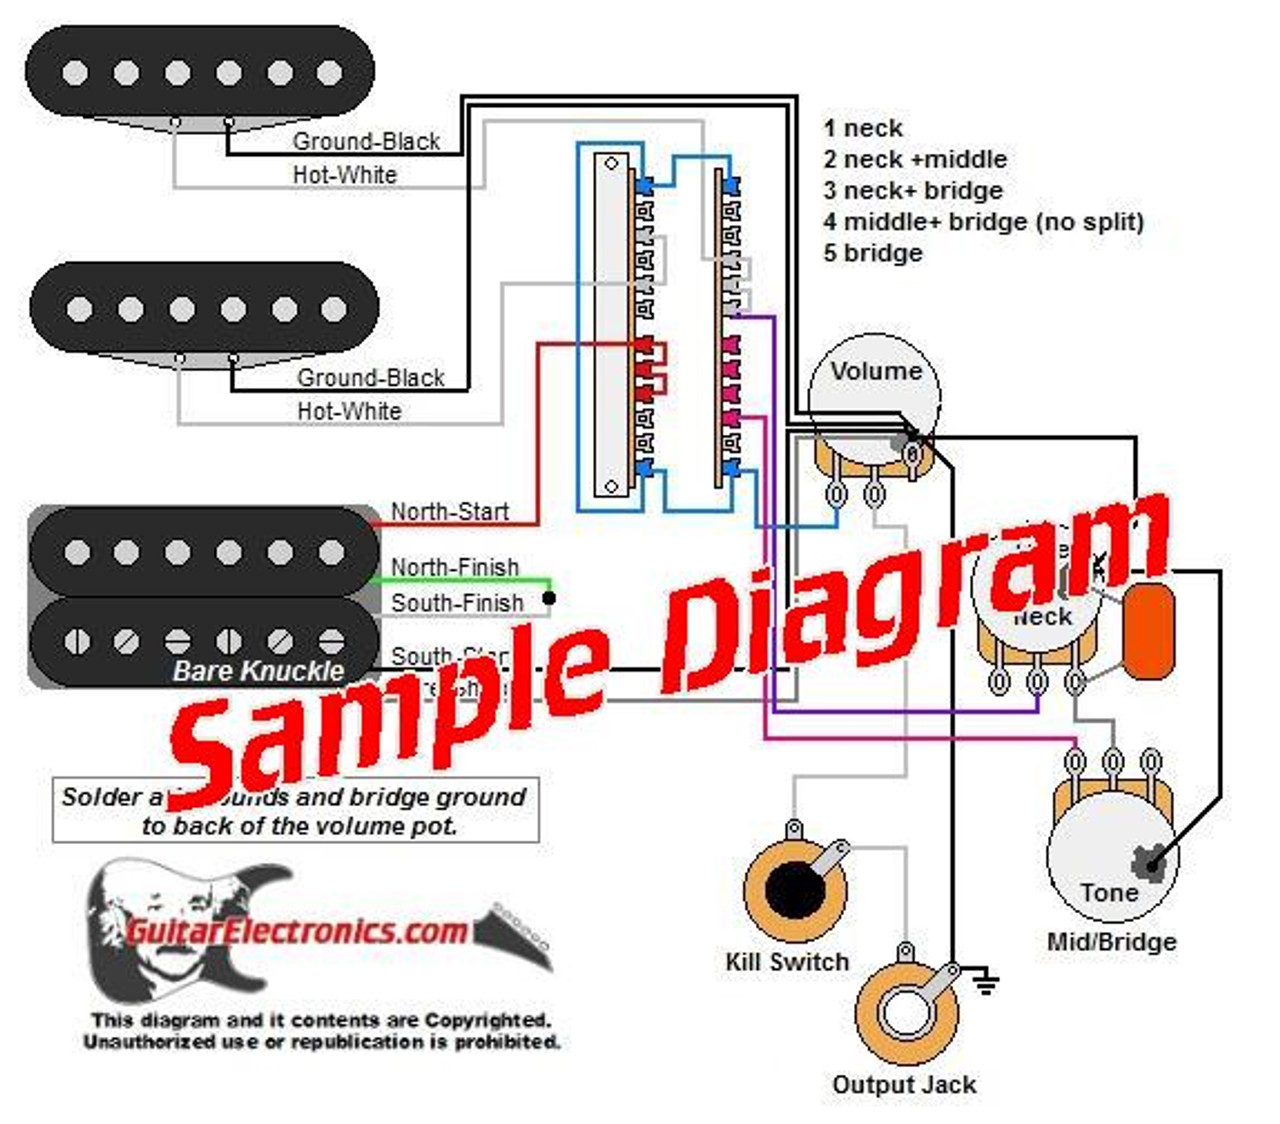 3 Pickup Custom Designed Guitar Wiring Diagrams | Guitar Wiring Diagrams Dual Humbucker |  | Guitar Electronics